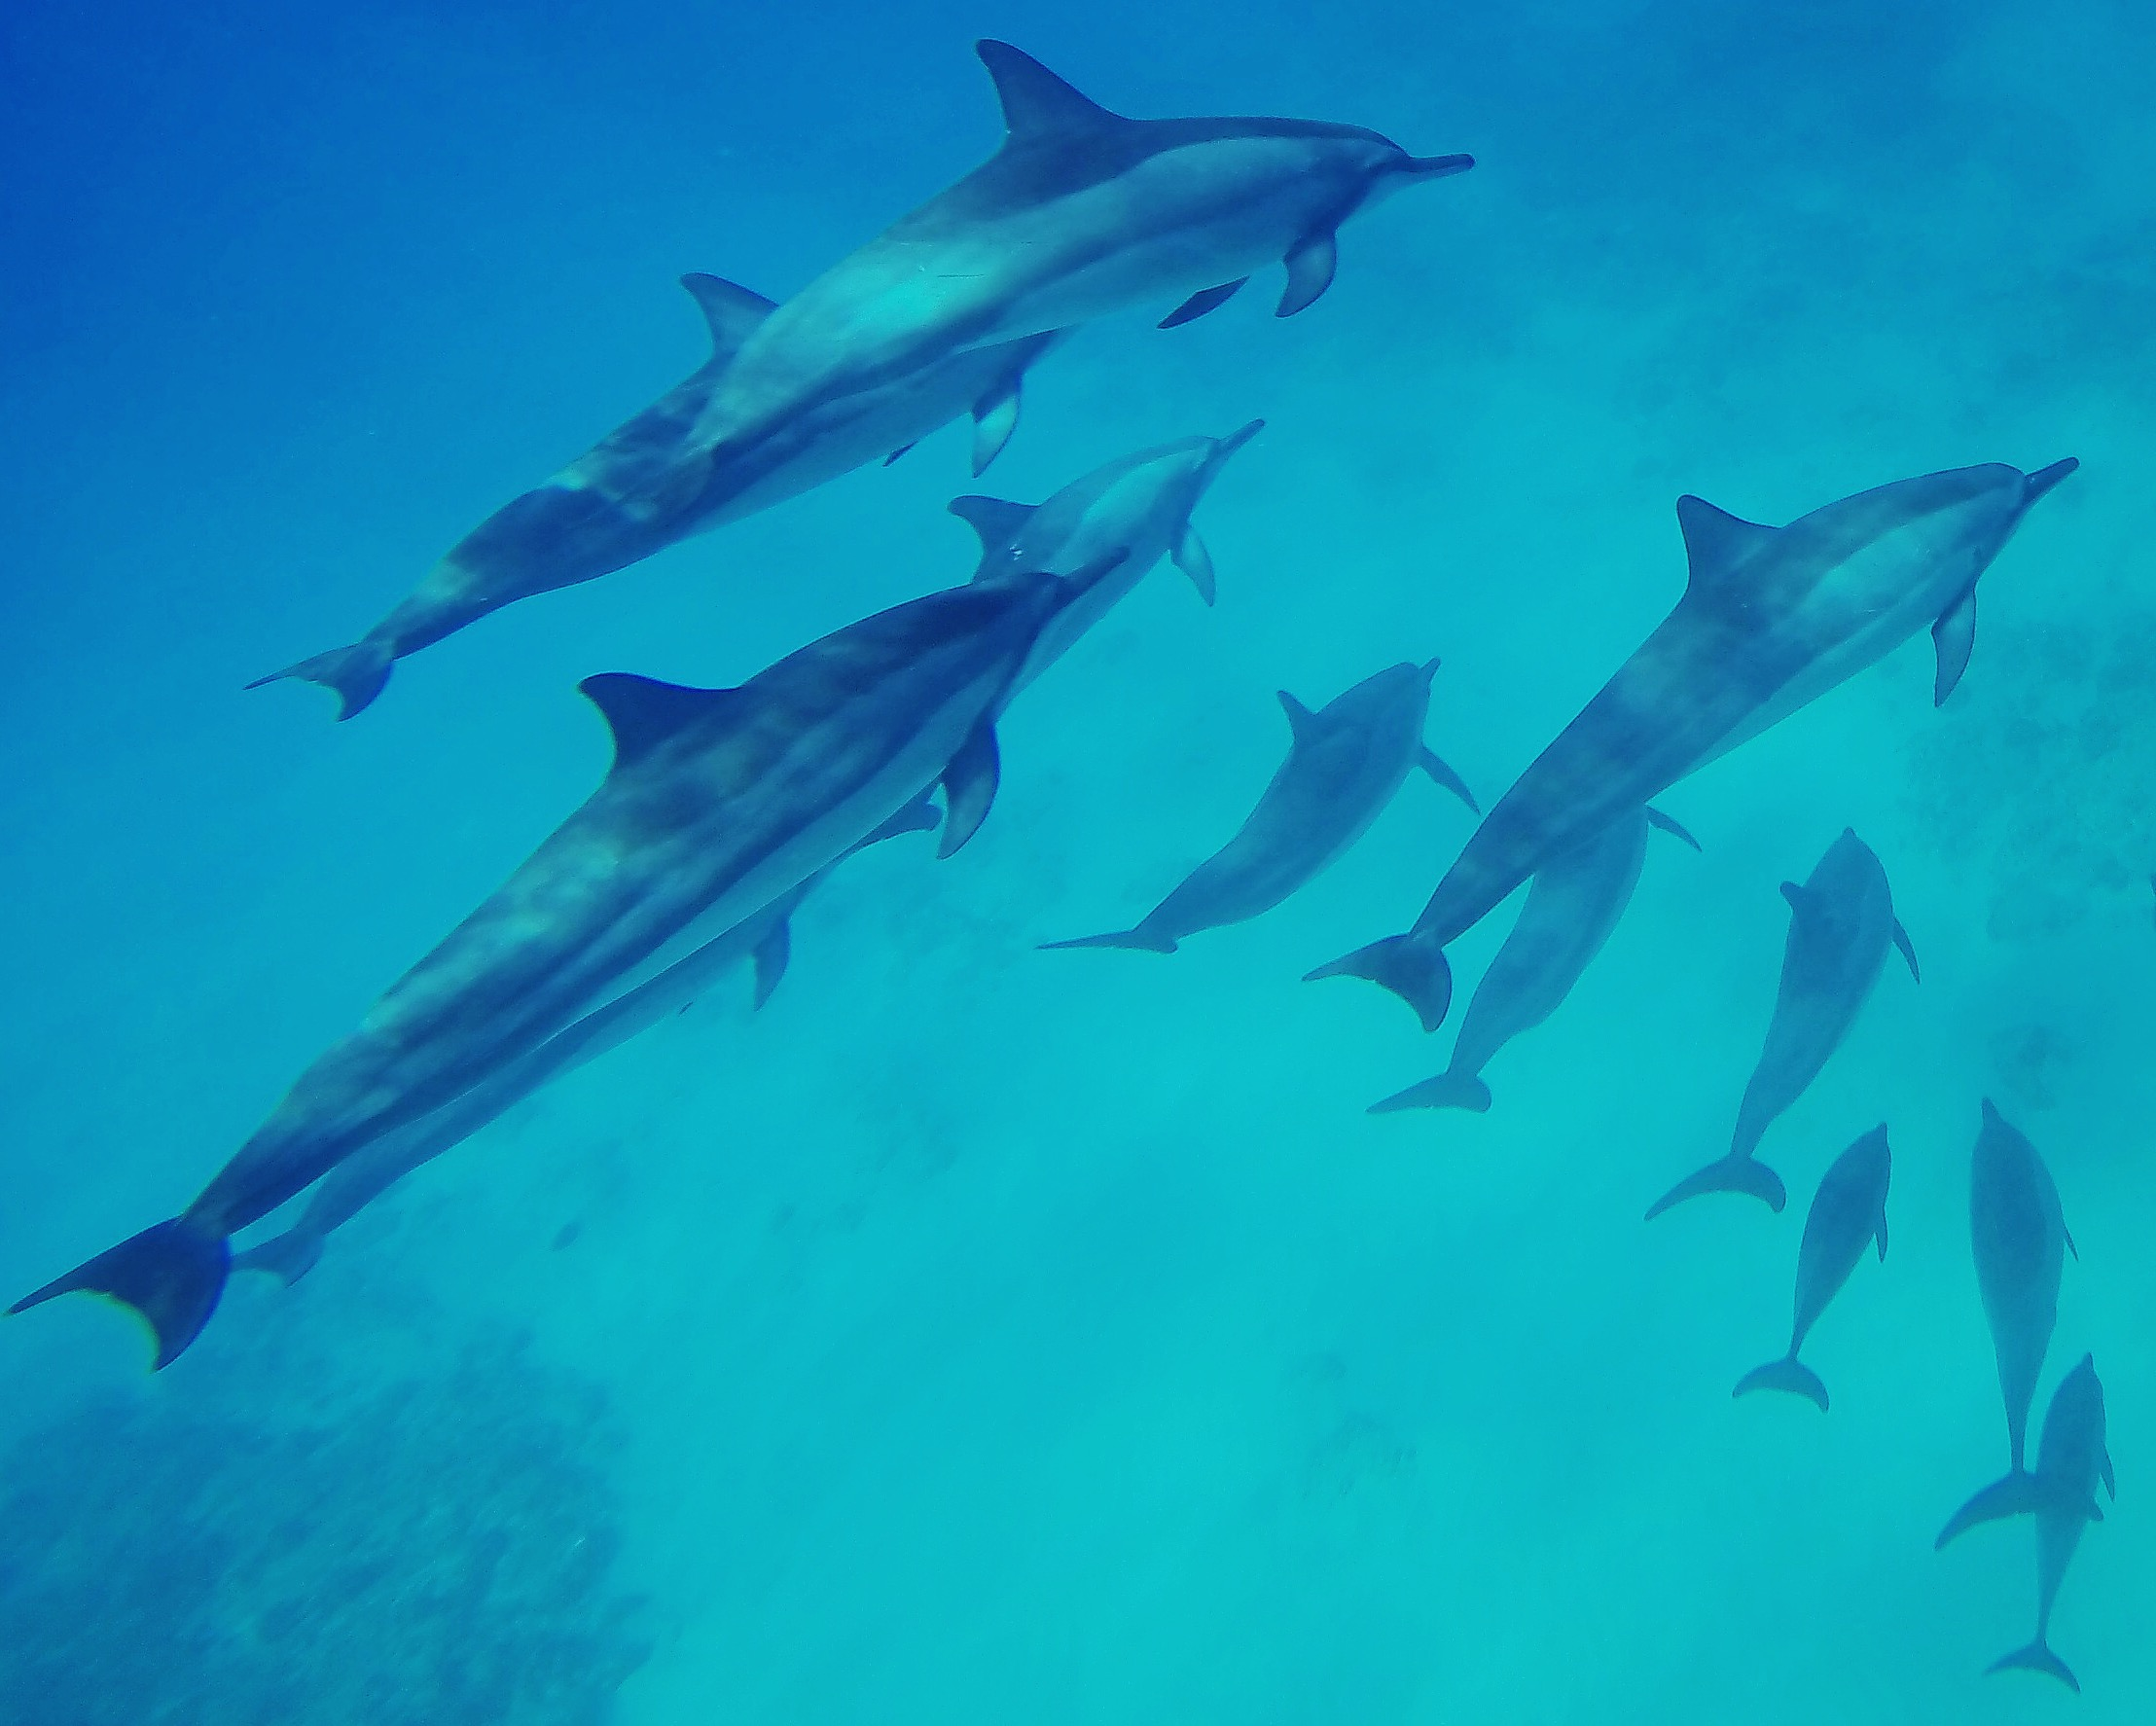 Dolphins in Oahu, HI shot with a GoPro